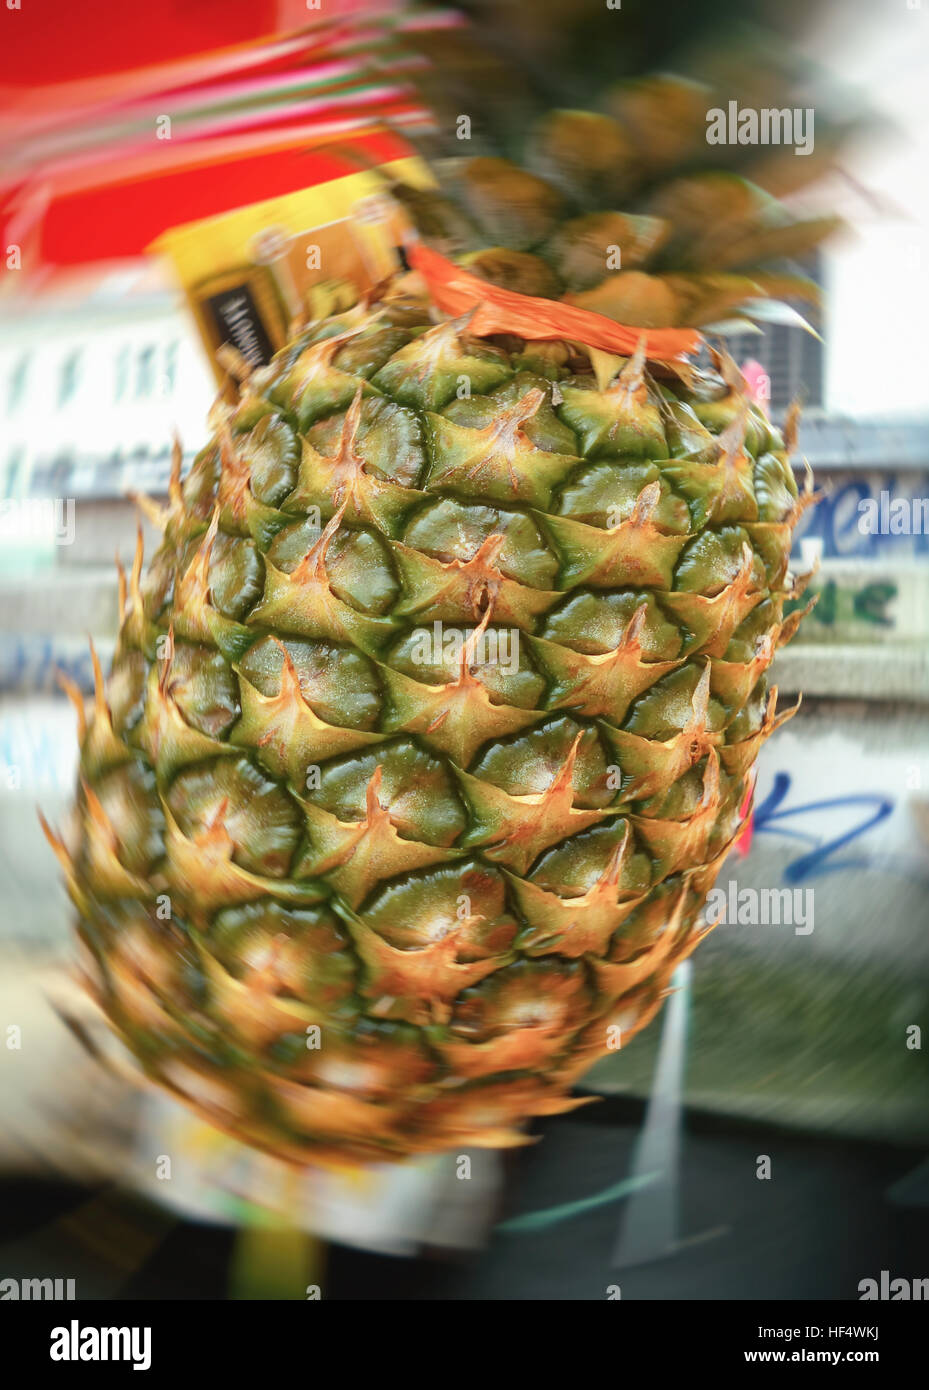 Pineapples at the market, backgrounds, textures - Stock Image